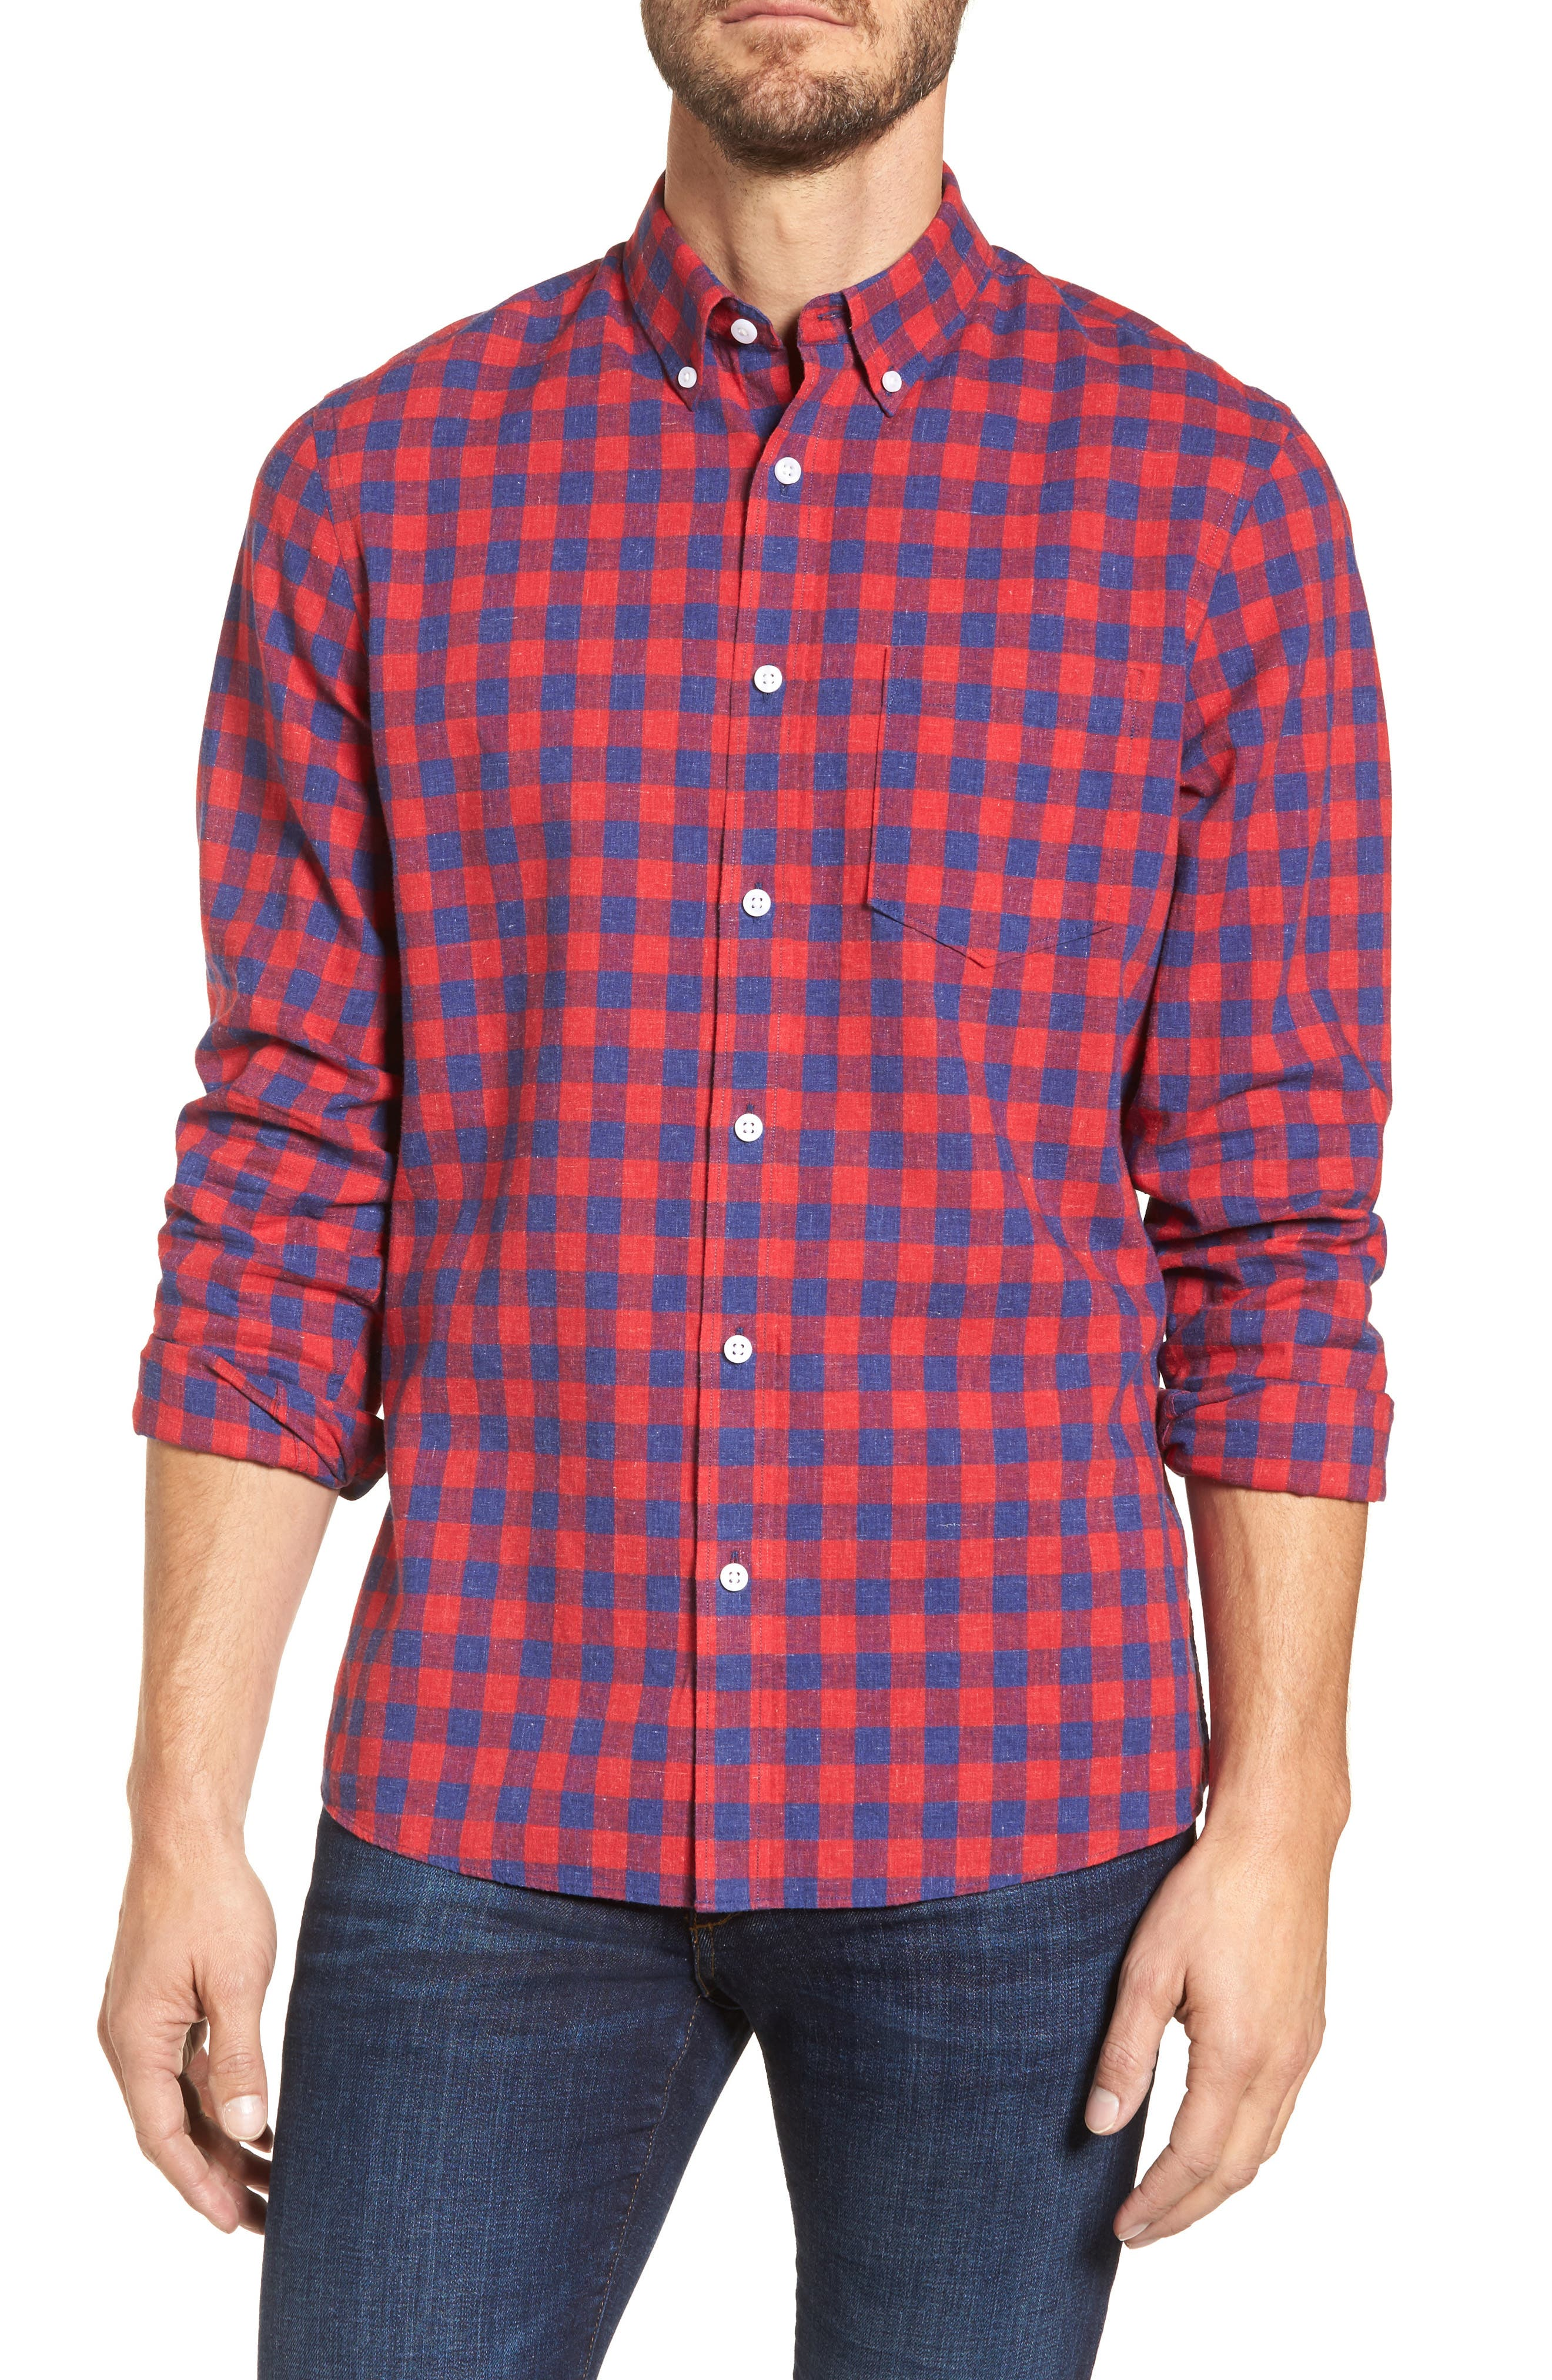 Spade Trim Fit Check Sport Shirt,                         Main,                         color, Red Chili Blue Check